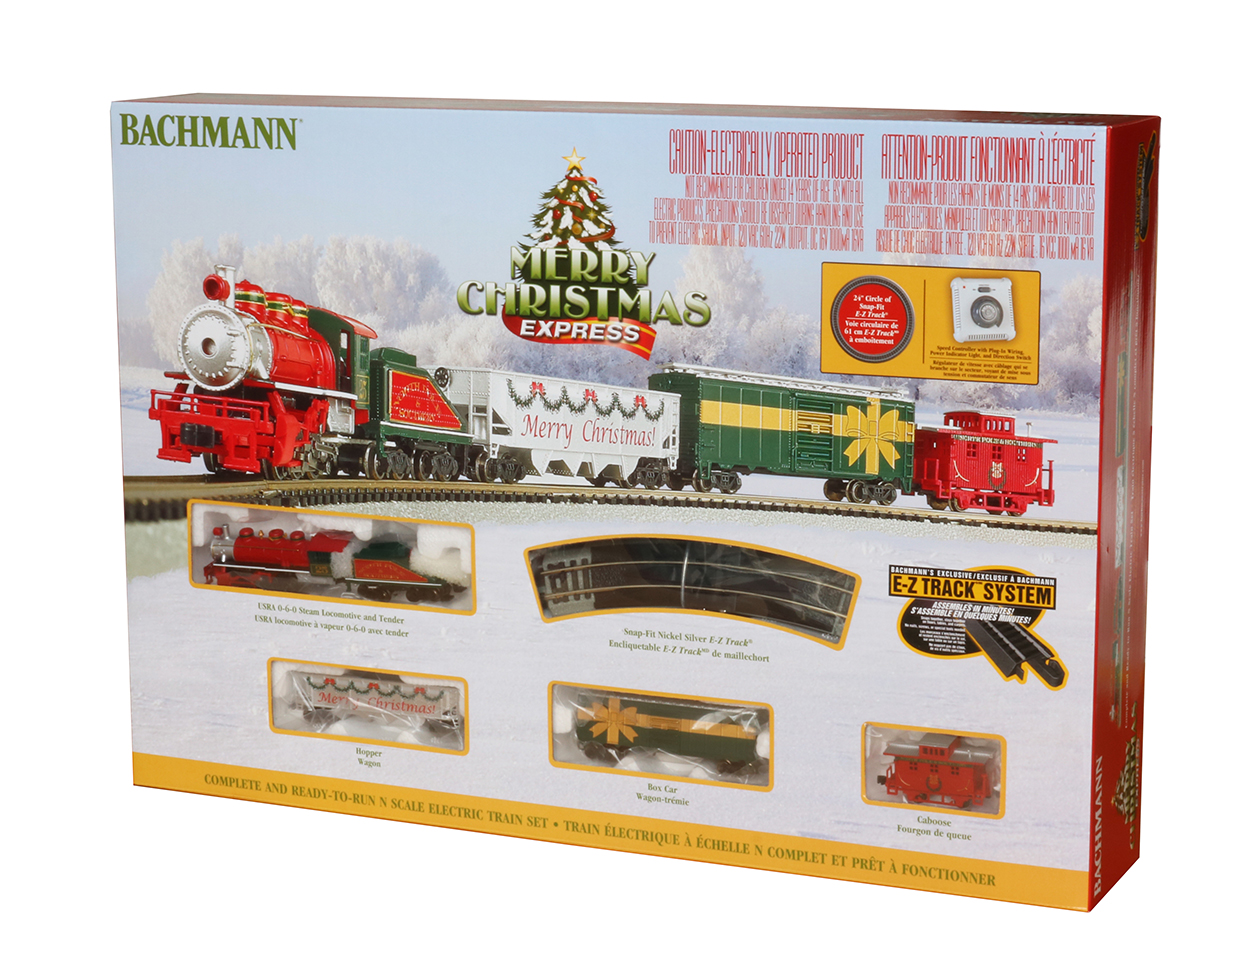 Merry Christmas Express (N Scale)